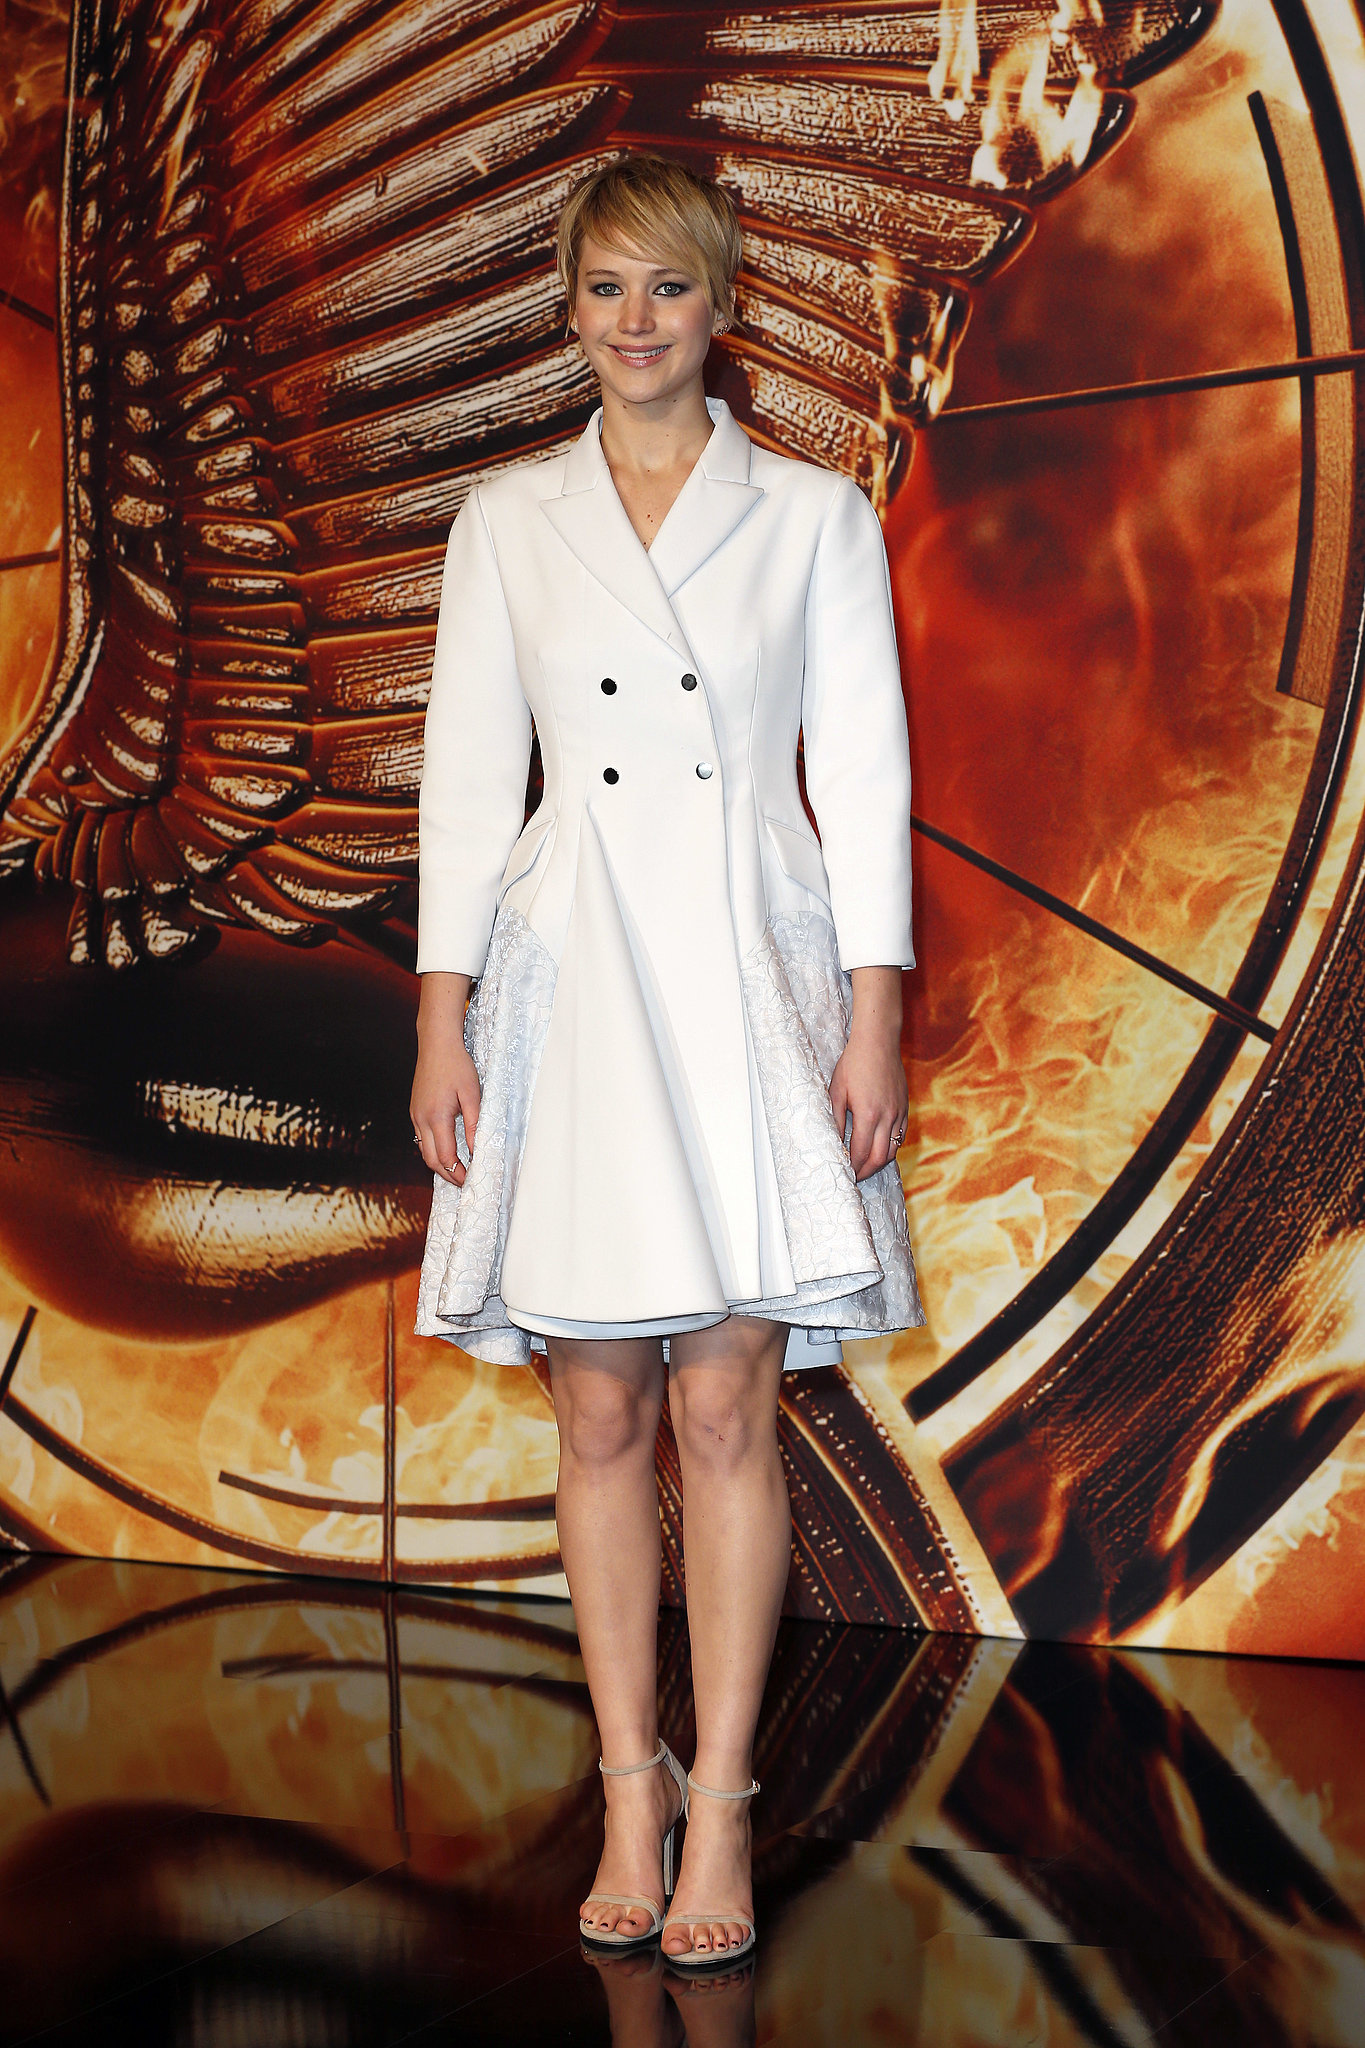 Jennifer Lawrence attended the Germany premiere wearing nothing but an ice blue coatdress by Dior and a pair of Stuart Weitzman sandals.